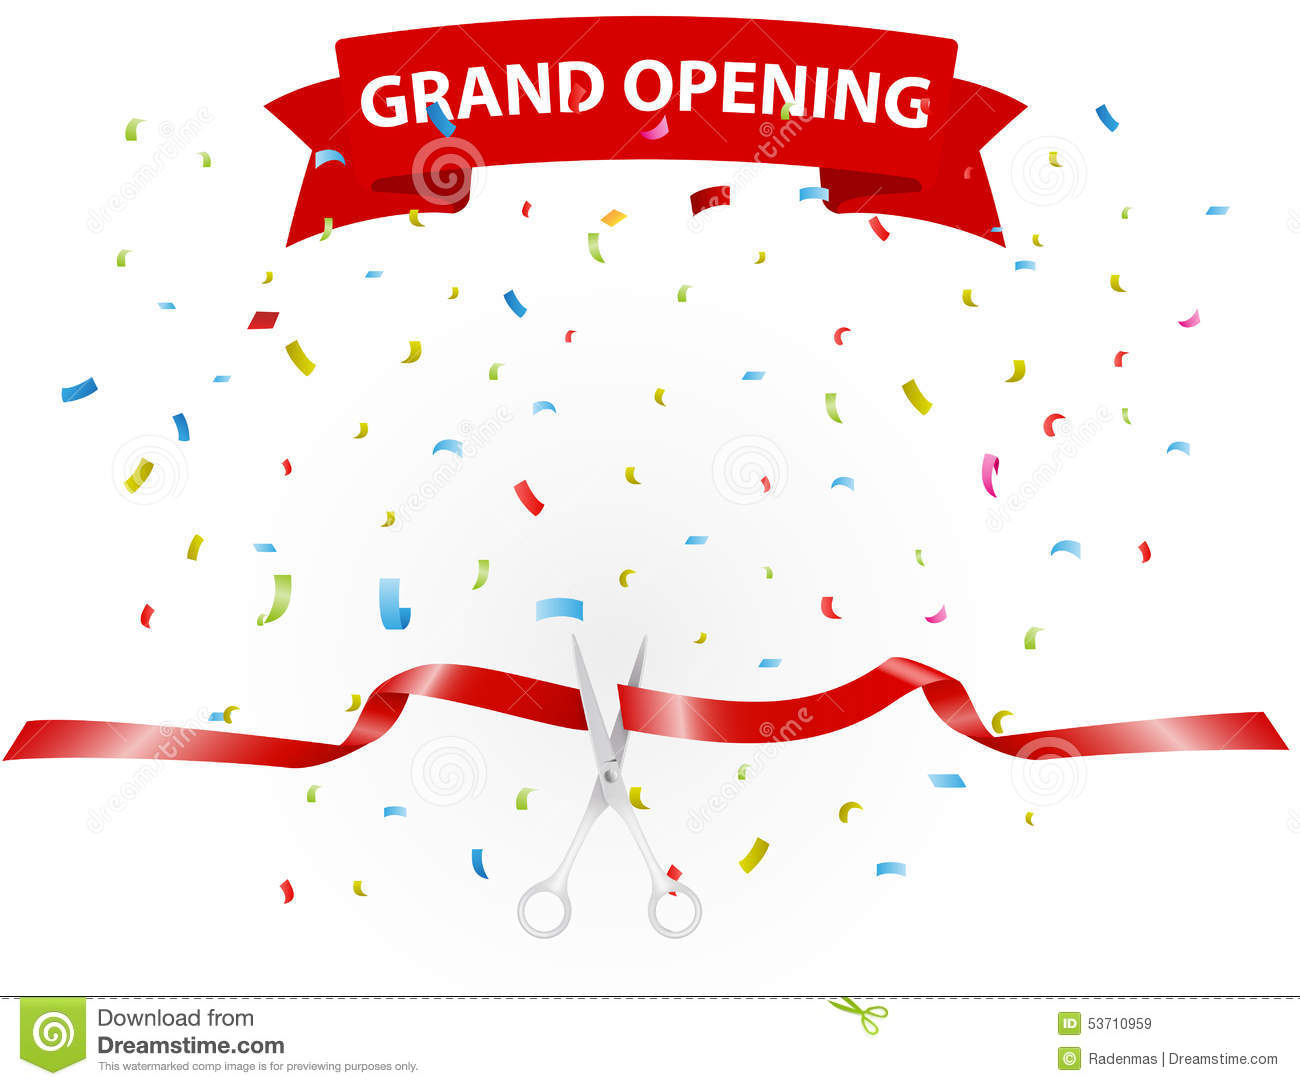 Grand Opening Background With Confetti Stock Vector - Image: 53710959